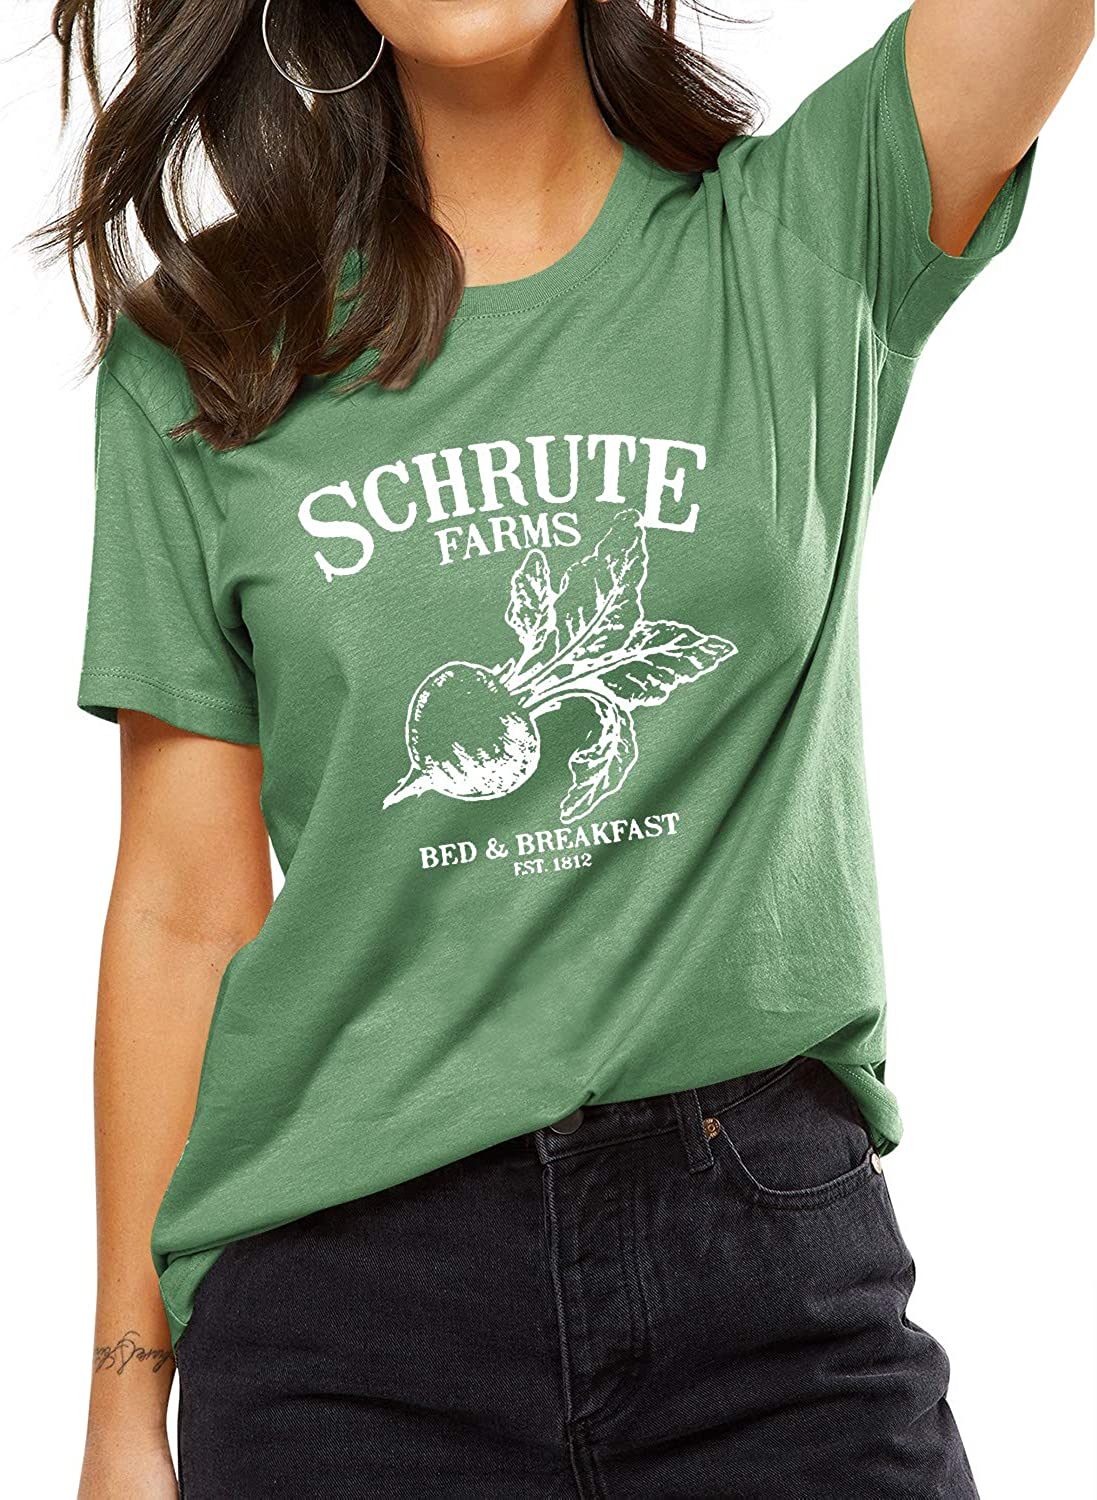 Schrute Farms Beets Girls Fashion Thin Casual No Show Socks